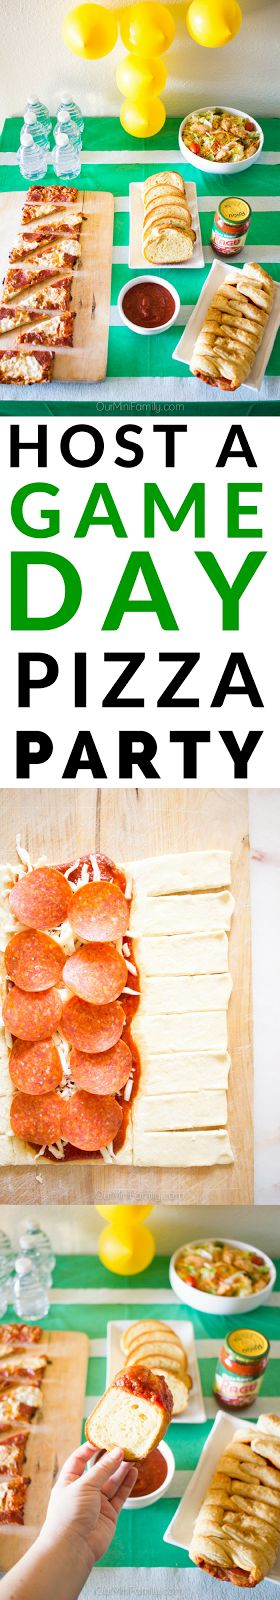 See these tutorials and recipe ideas to host your very own game day pizza party! #ad